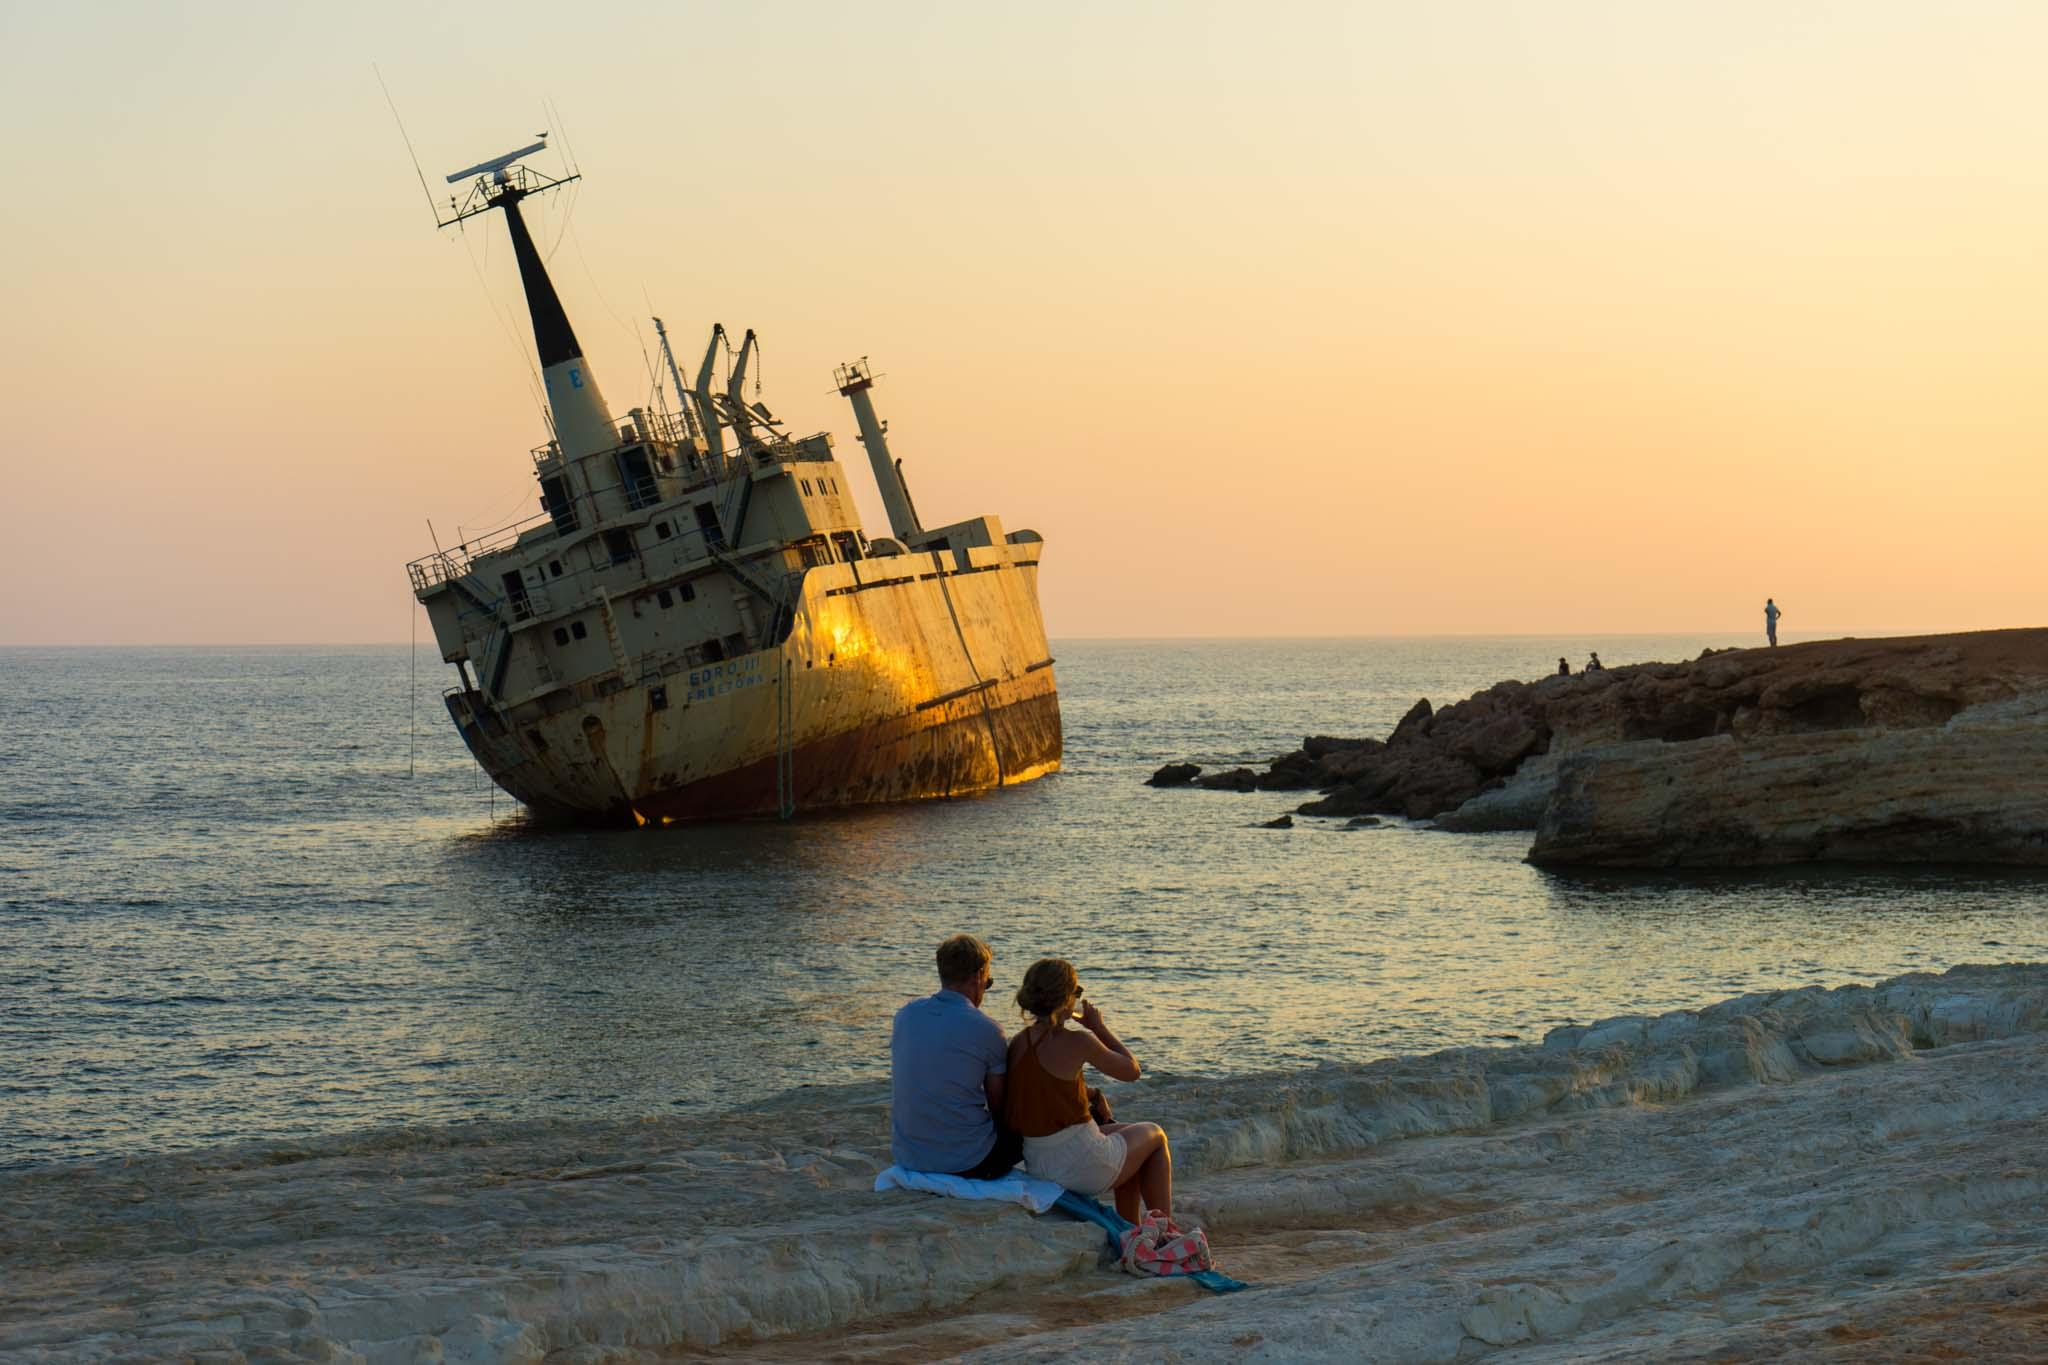 The view of the shipwreck at Pegeia area is one of the most popular spots for sunset. – © Michael Turtle